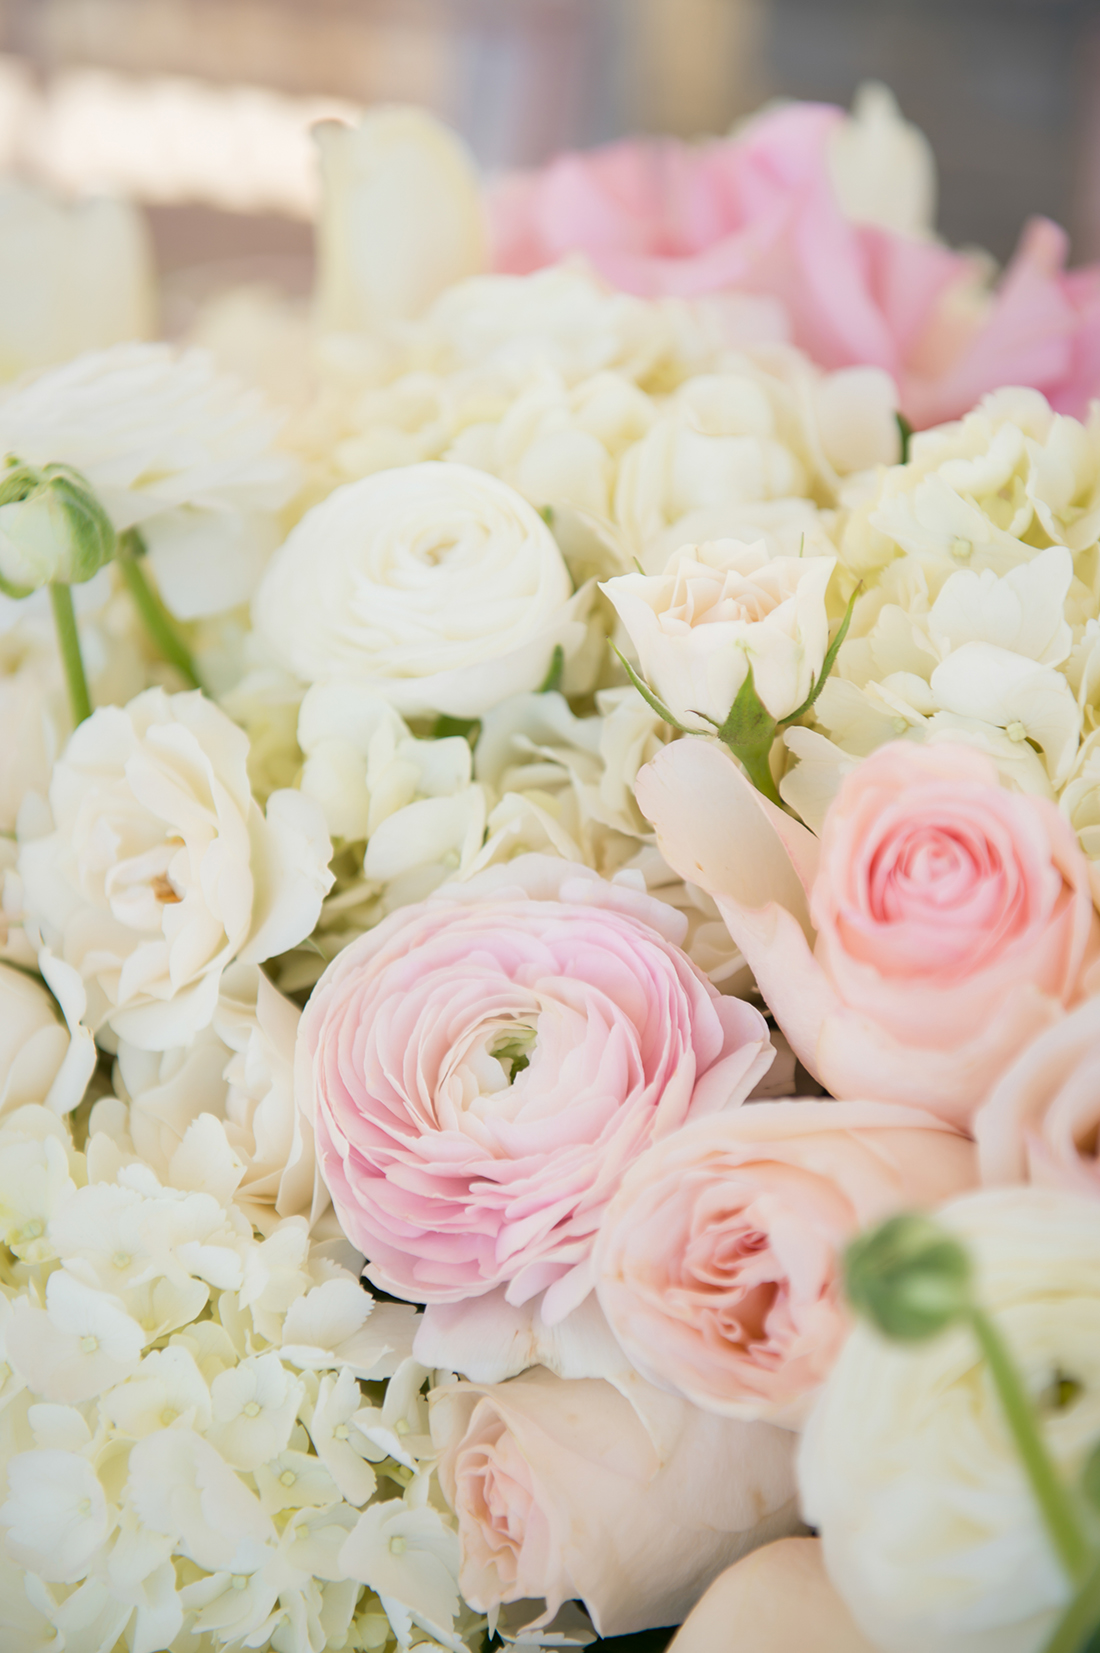 A close up image of white and pink roses for the Something Lovely event